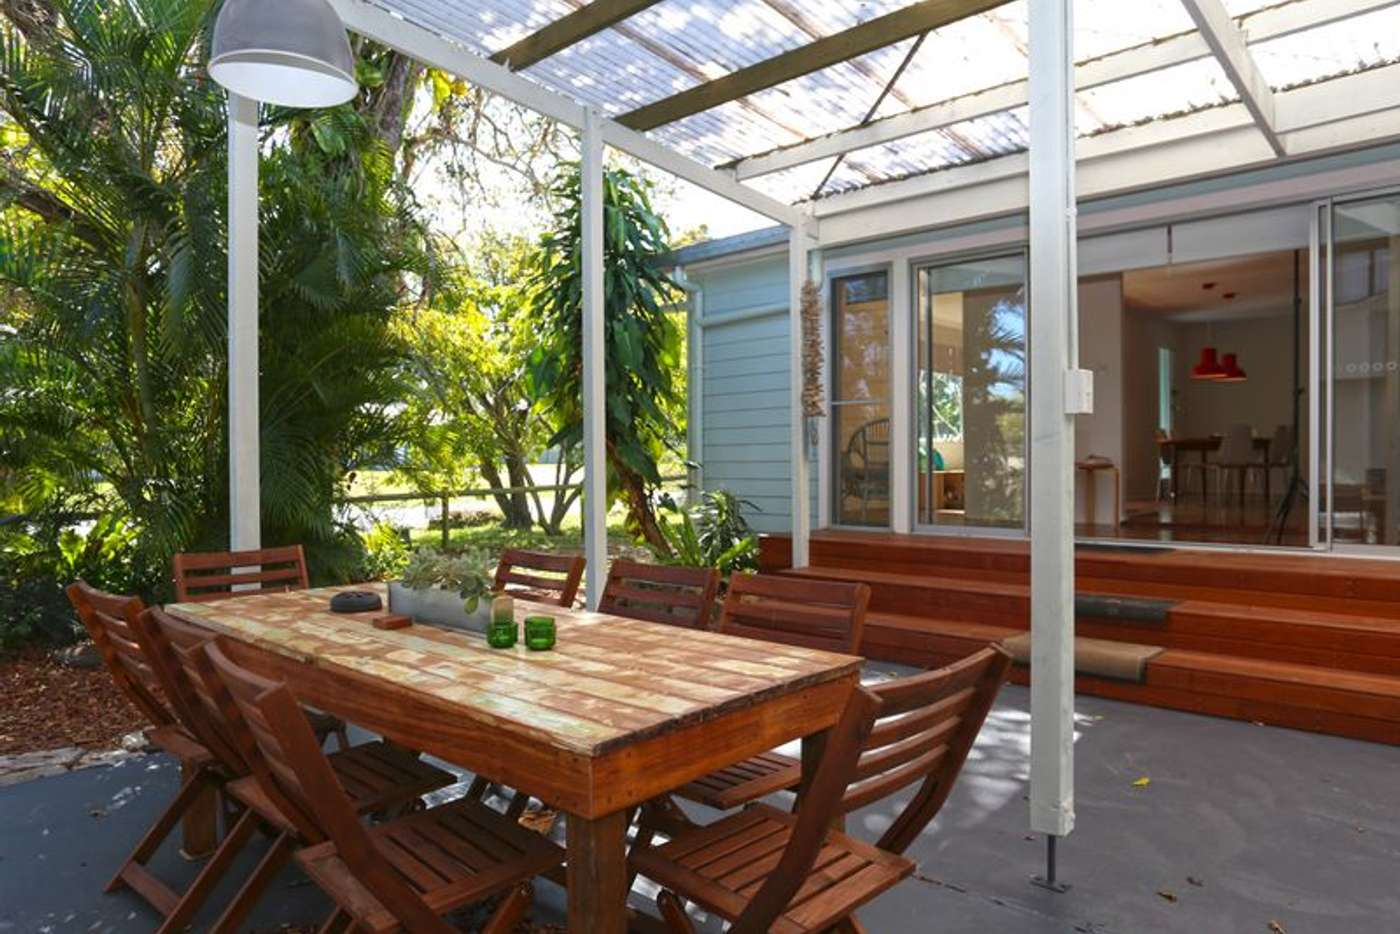 Main view of Homely house listing, 4 Micalo Street, Iluka NSW 2466